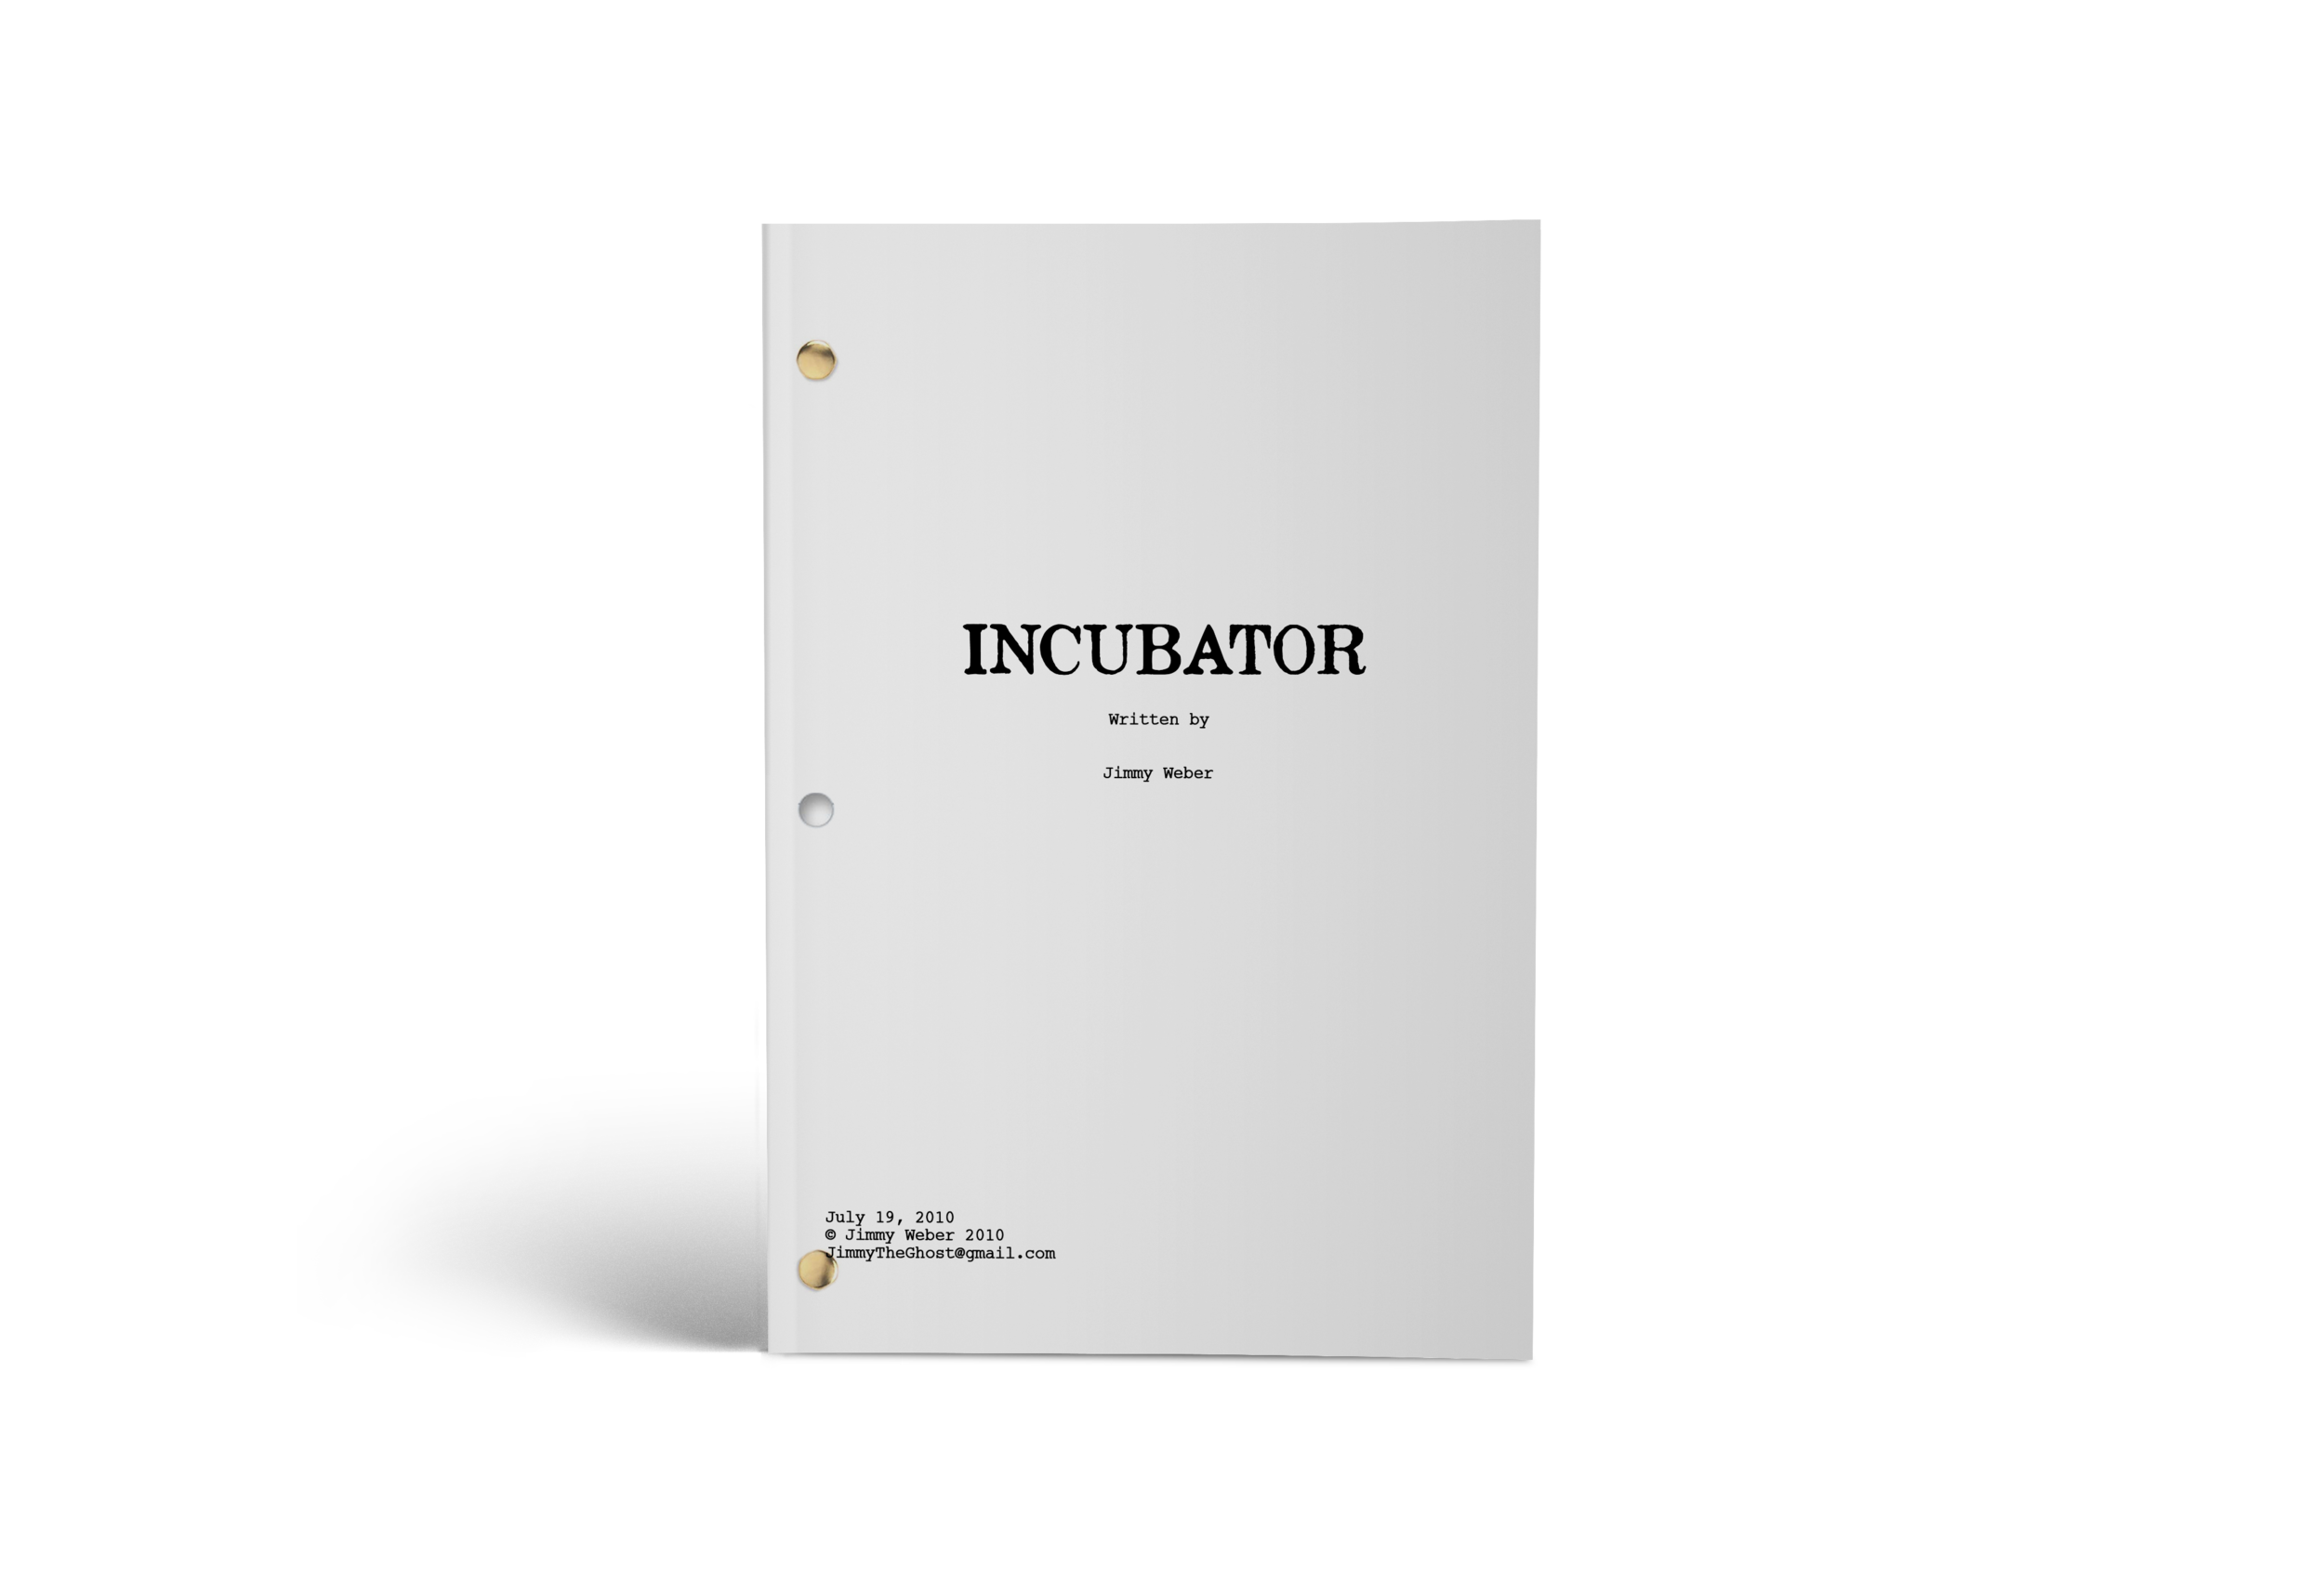 INCUBATOR - Final Production Draft. 6 Pages.